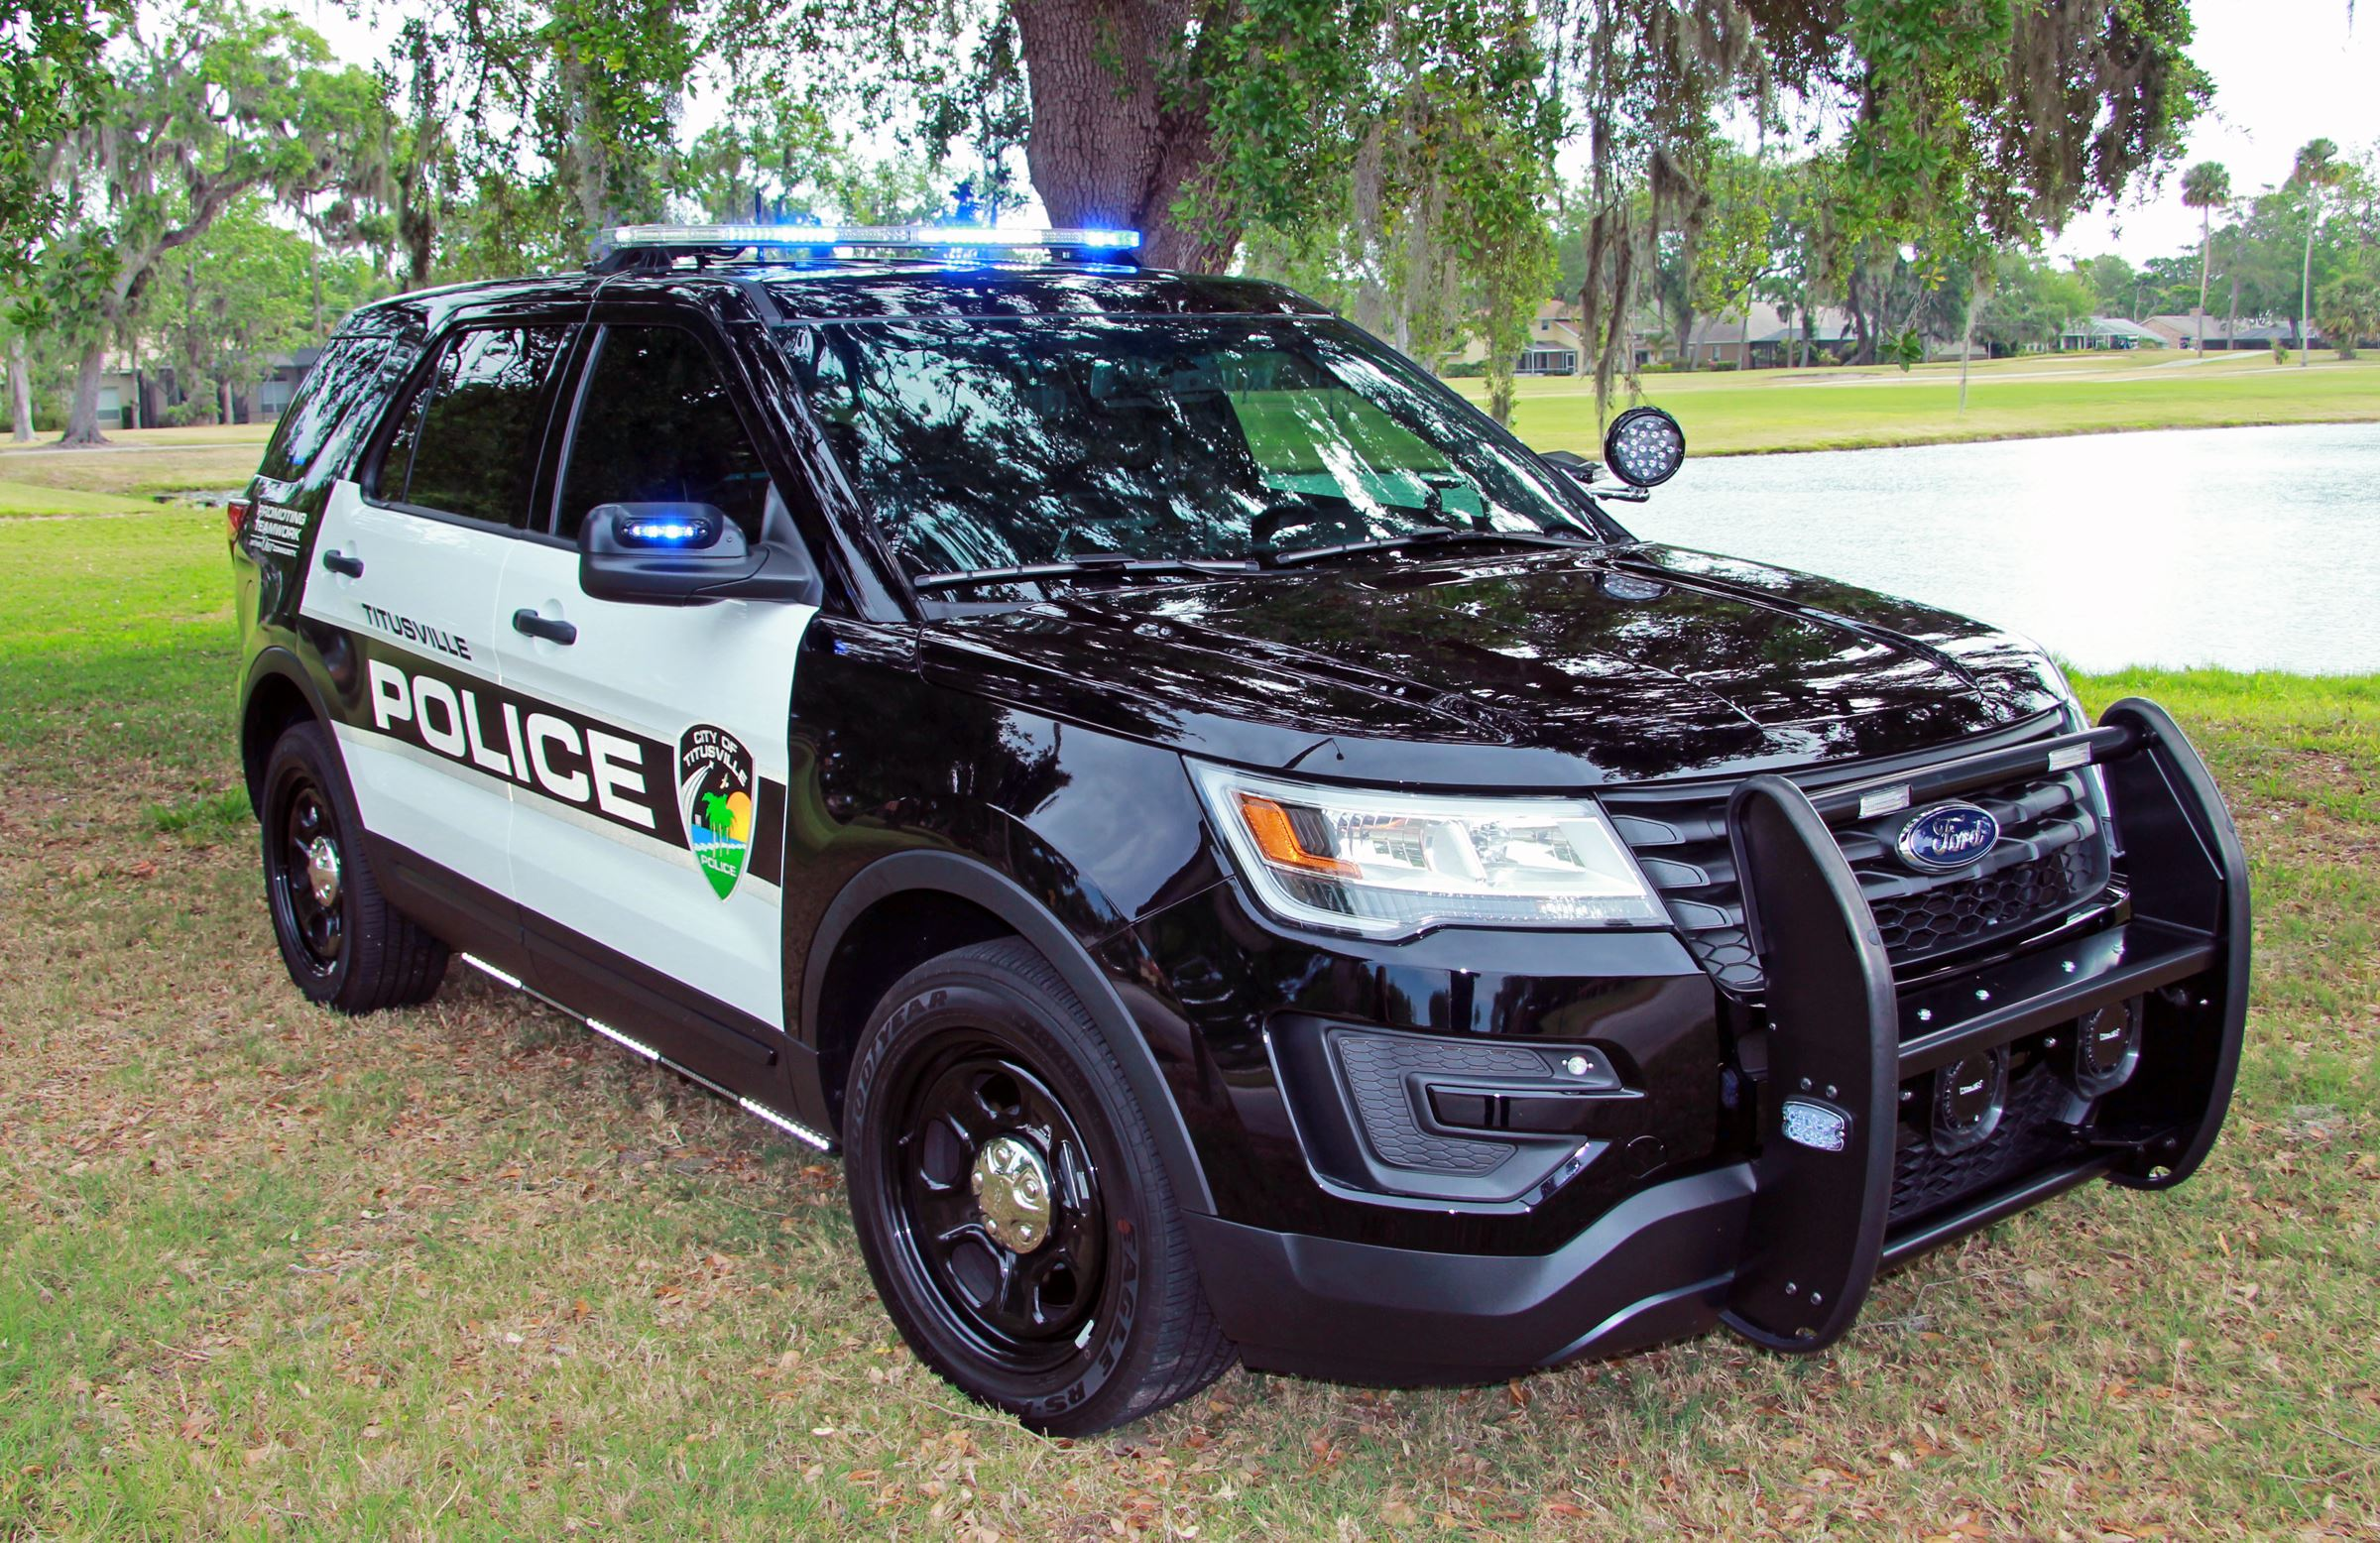 2017 Ford Police SUV